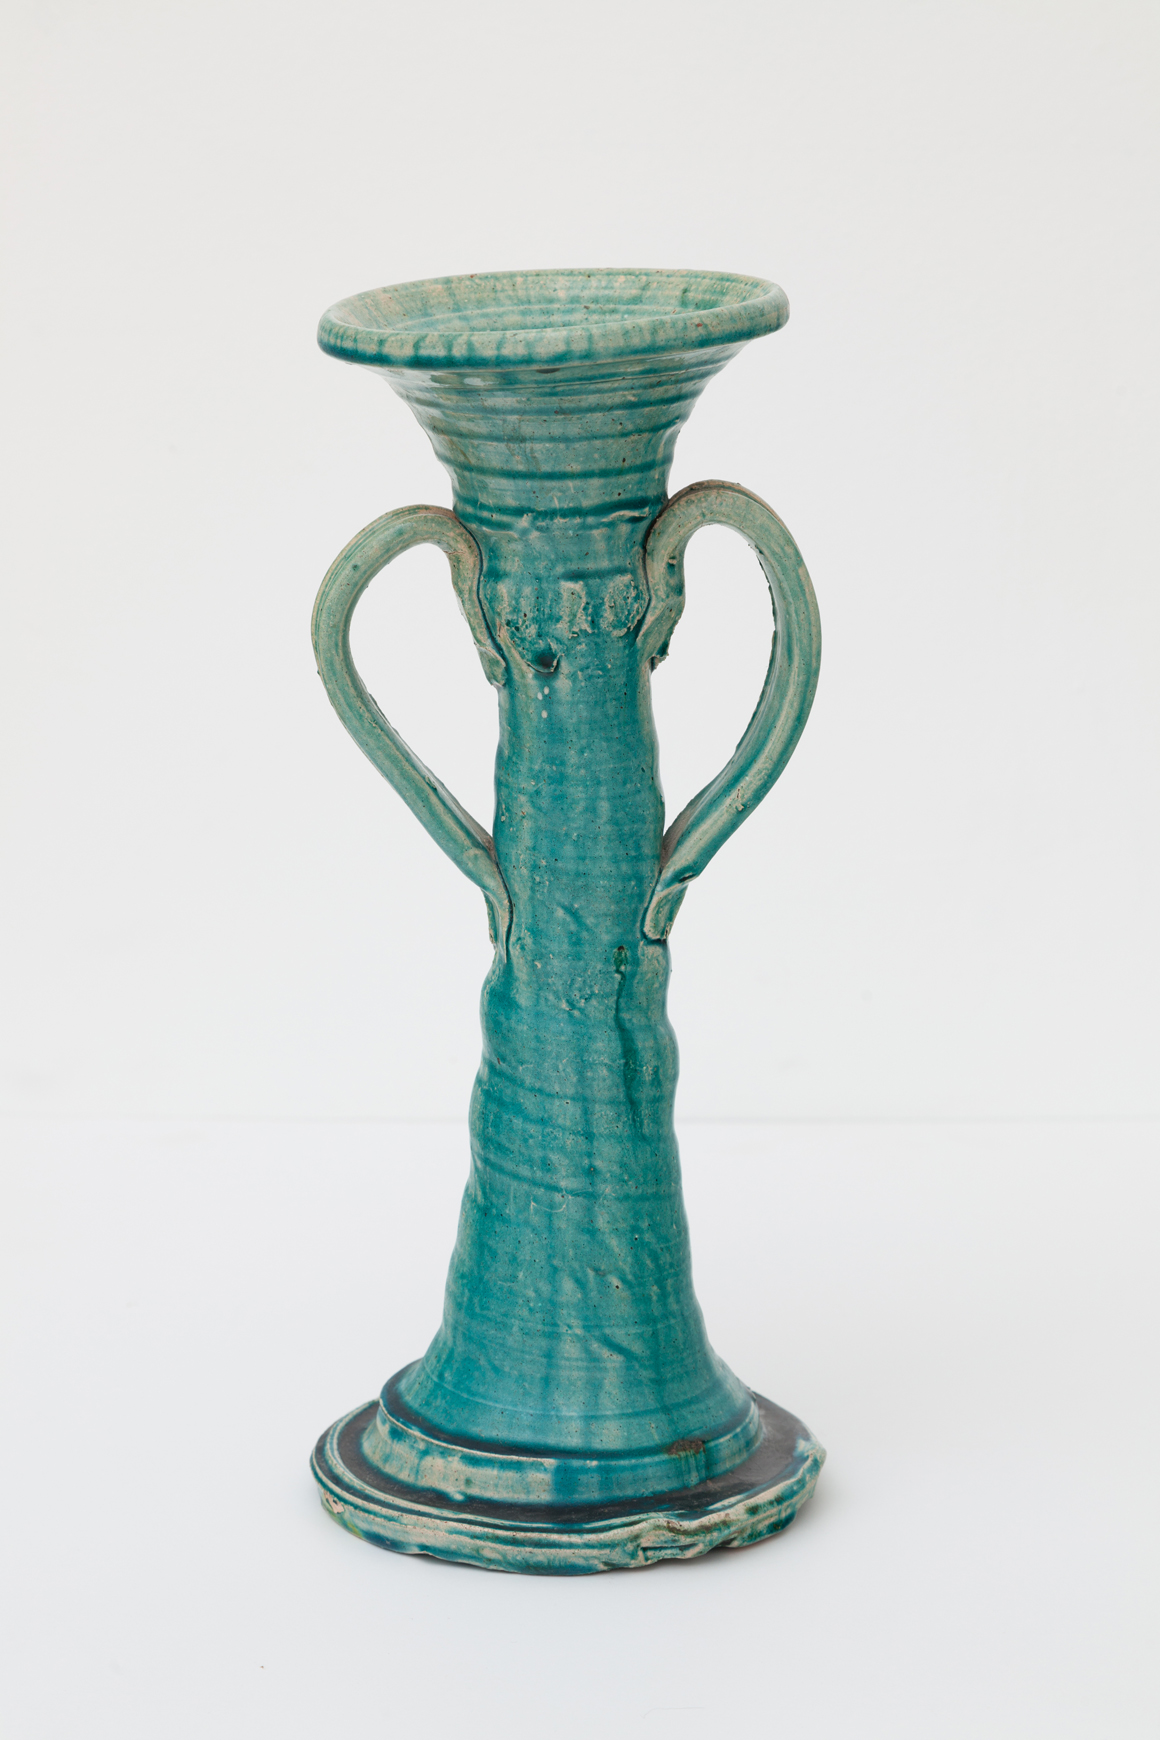 "<p><span class=""name"">Betty Woodman</span><br><em>Untitled (Candelabra)</em><span class='media'>Glazed ceramic</span>13.5 x 5.5 x 5.5 in  (34.3 x 14 x 14 cm)<br>1970<br><a class='inquire' href='mailto:info@gildargallery.com?subject=Artwork Inquiry BWOO0003&body=I am interested in finding out more about Untitled (Candelabra) by Betty Woodman'>Inquire</a></p>"